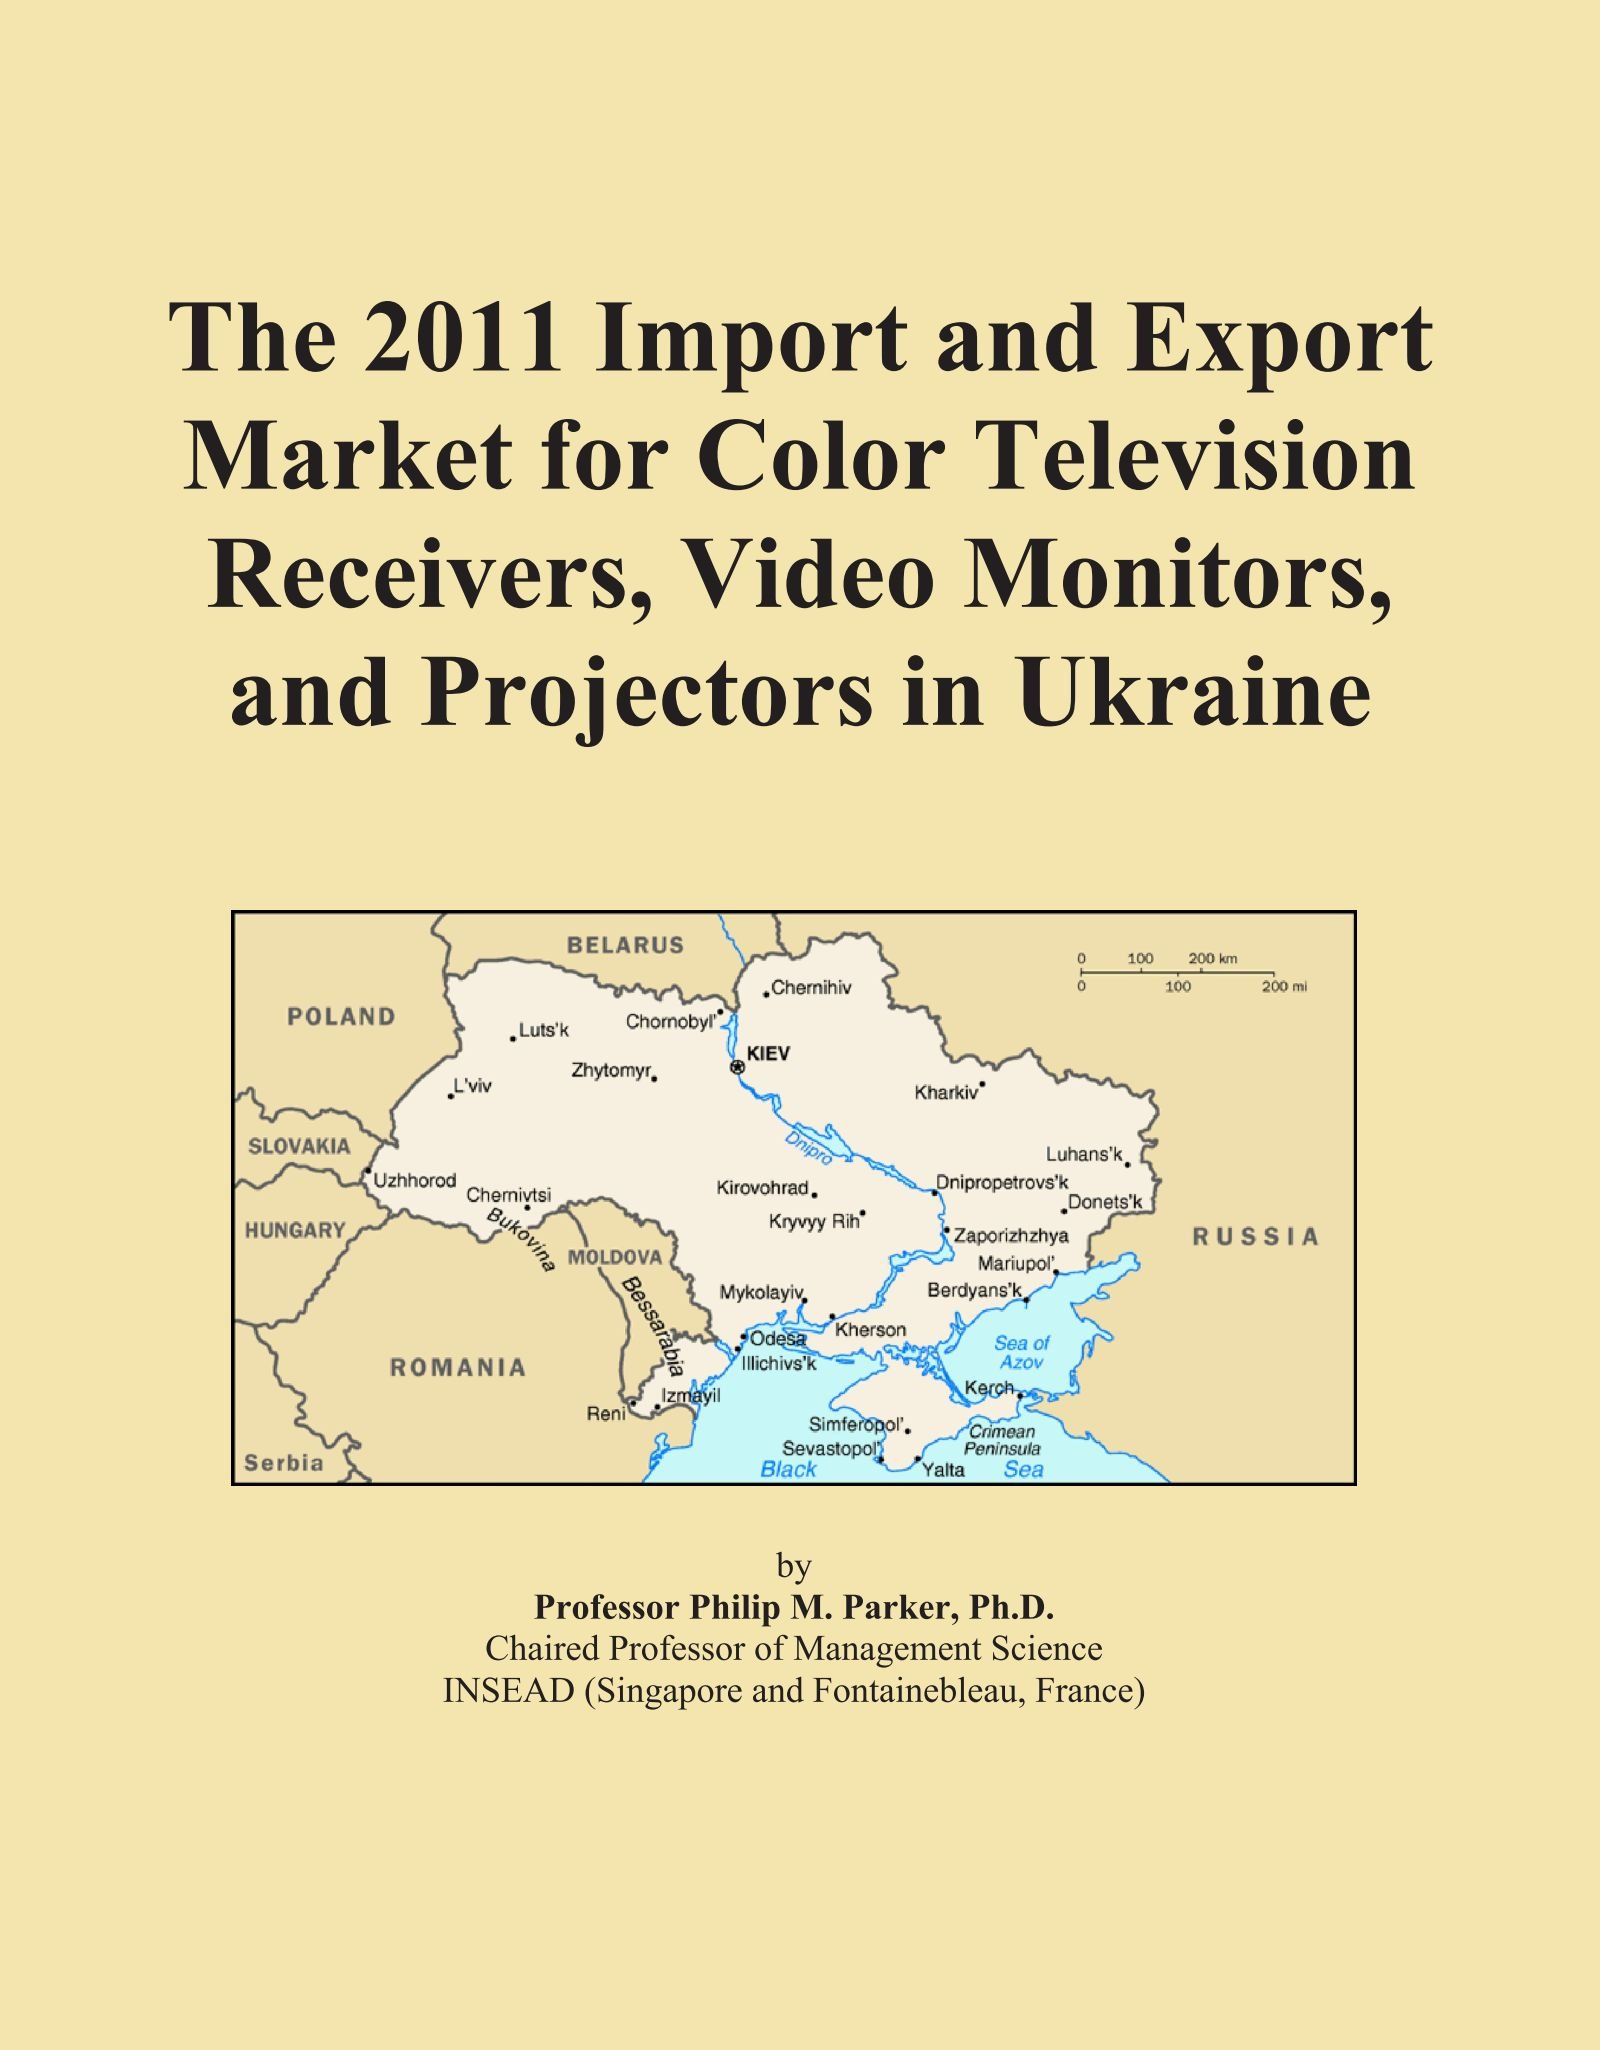 The 2011 Import and Export Market for Color Television Receivers, Video Monitors, and Projectors in Ukraine pdf